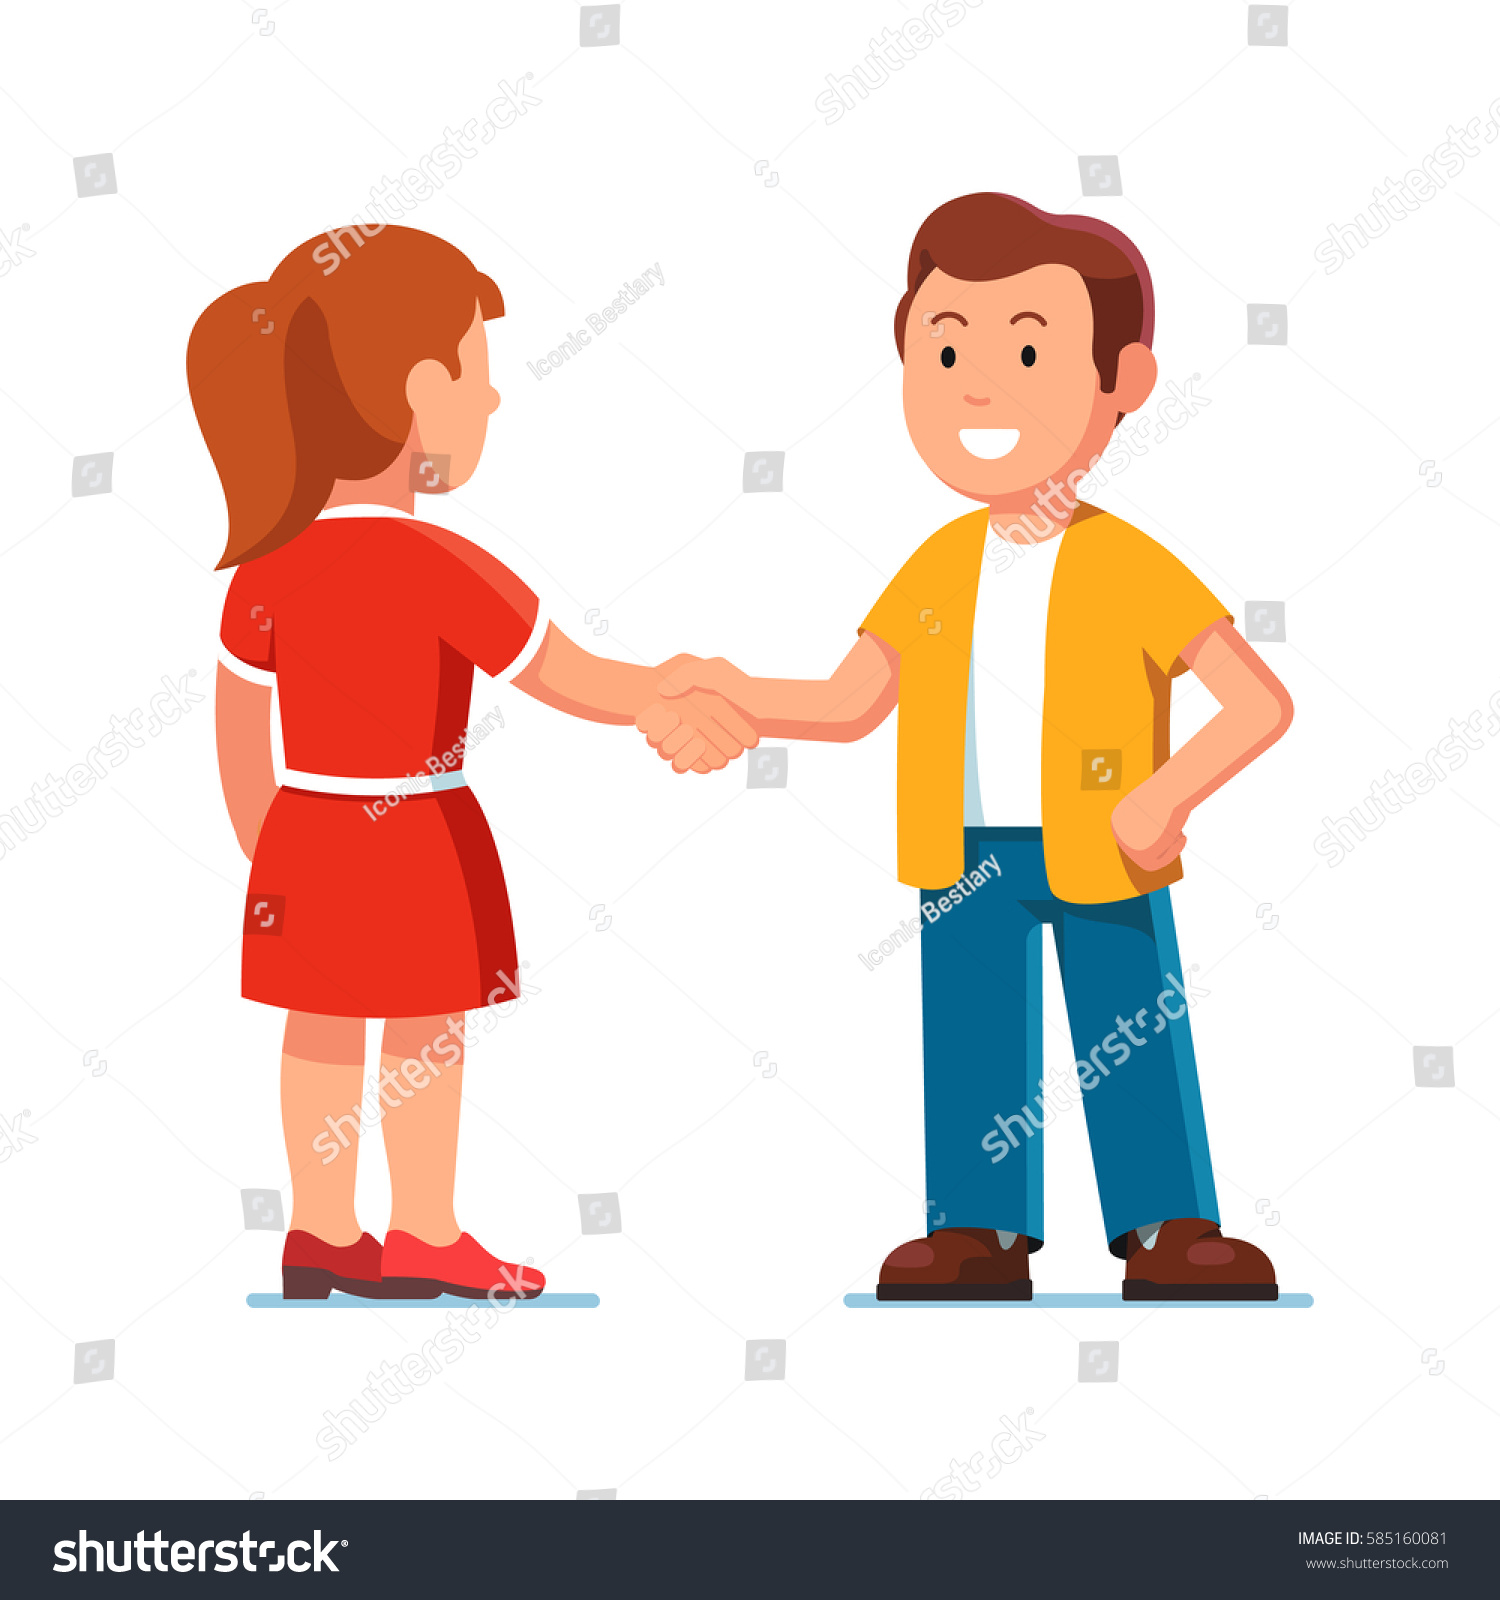 Two Male Kids Shaking Hands Picture